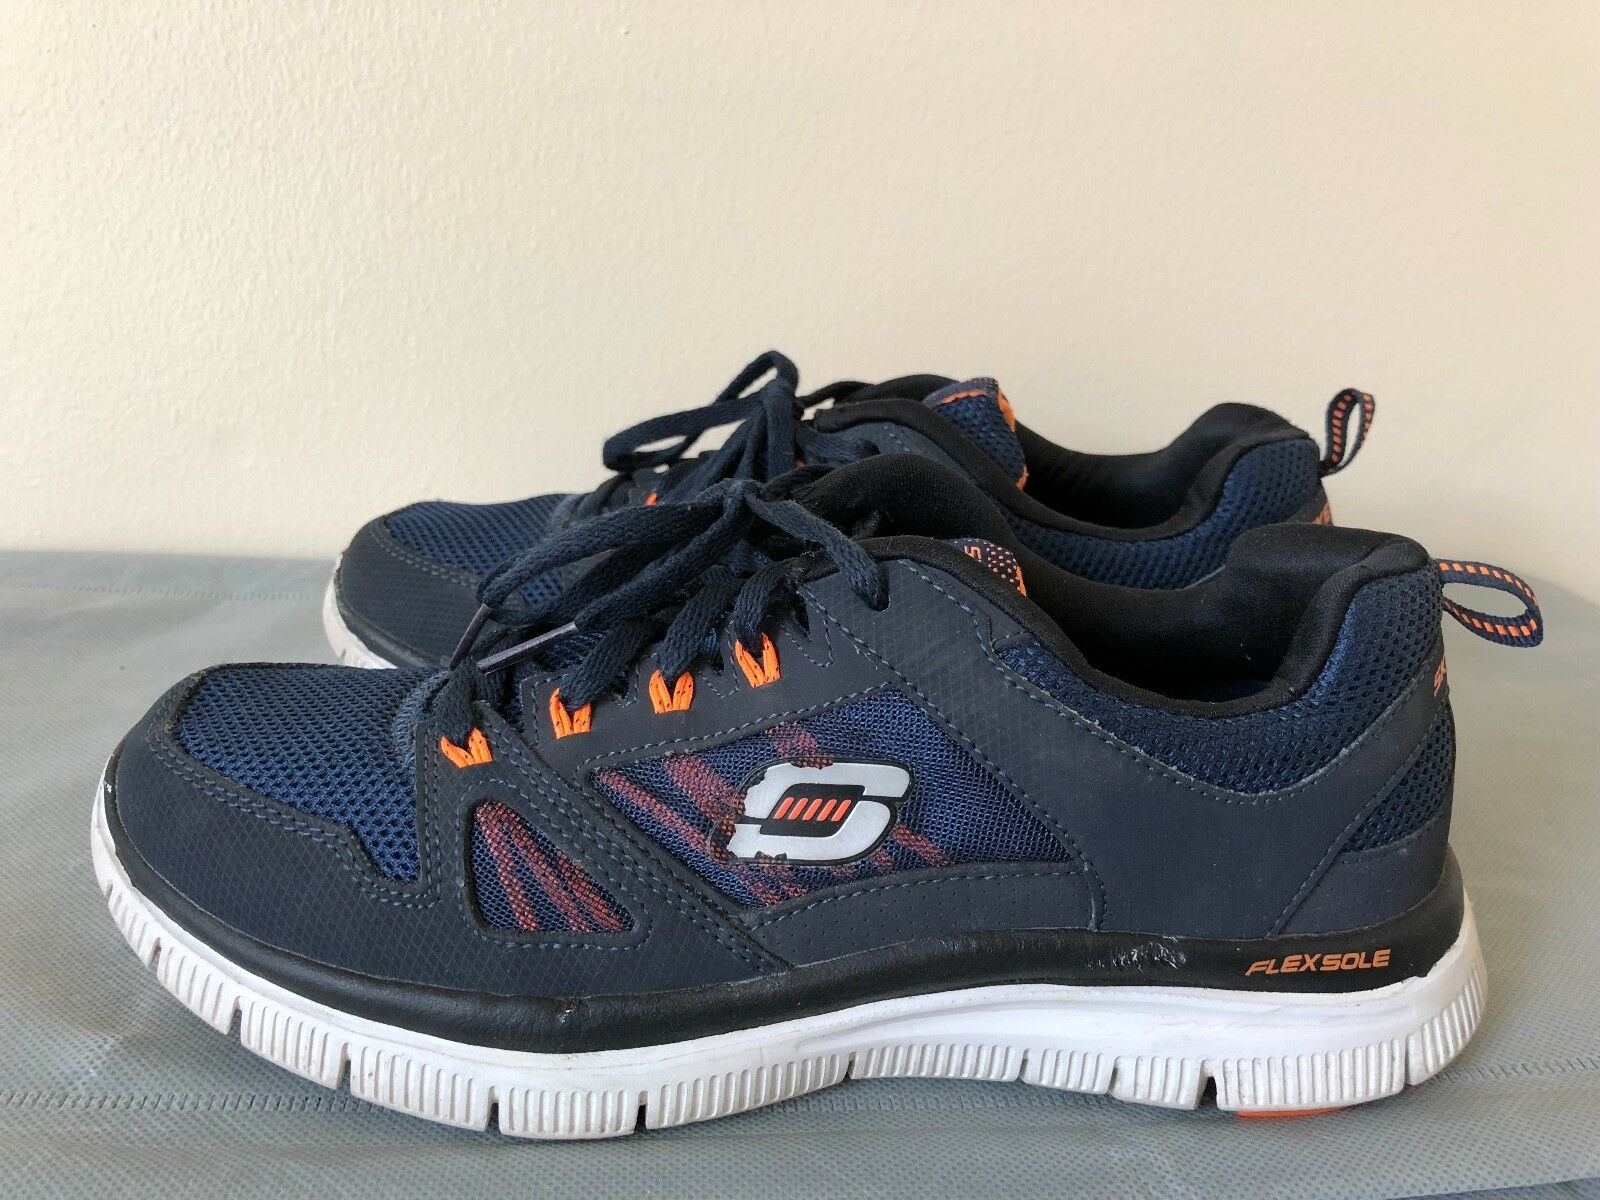 Skechers Men Flex Advantage Trainer Shoes Style 51251 Navy/Orange size US 7 New shoes for men and women, limited time discount